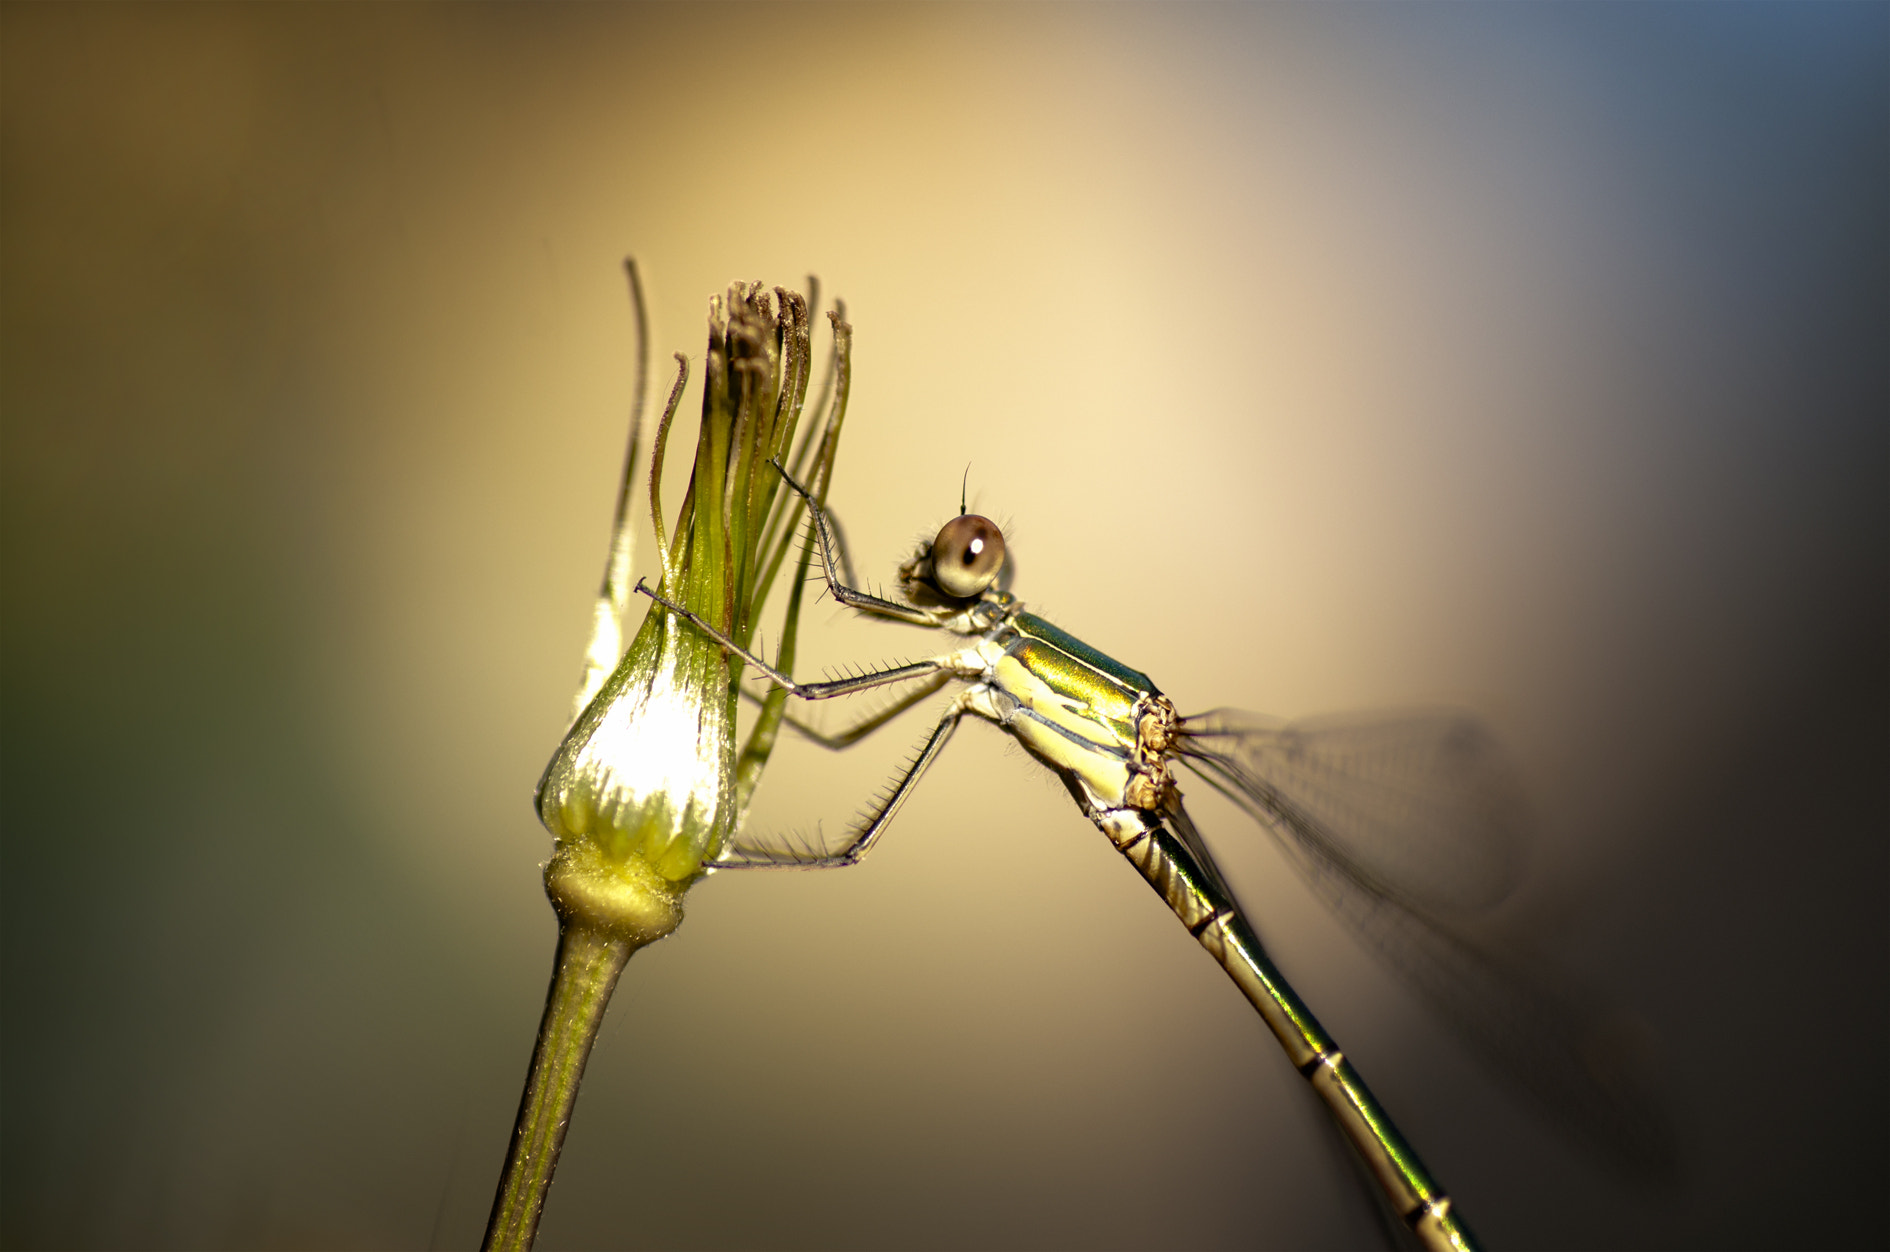 Photograph Dragonfly by Tamara Bruggink on 500px